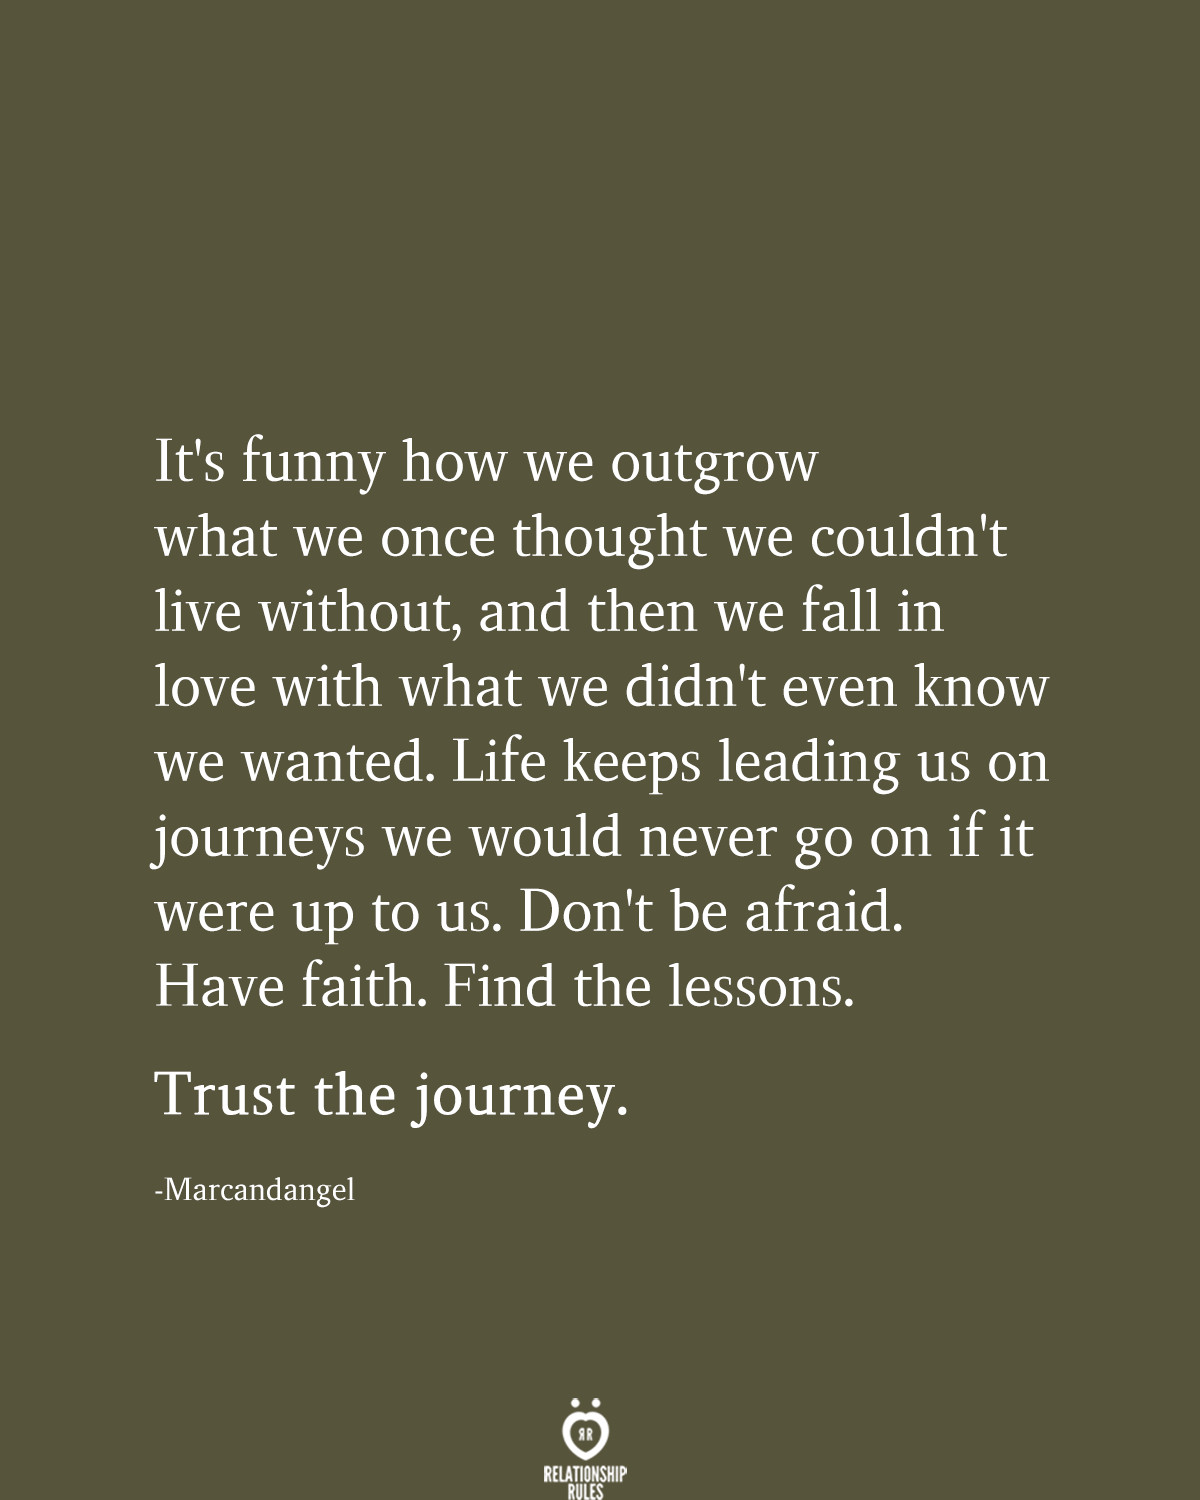 It S Funny How We Outgrow What We Once Thought We Couldn T Live Without Afraid To Love Quotes Life Journey Quotes Falling In Love Quotes